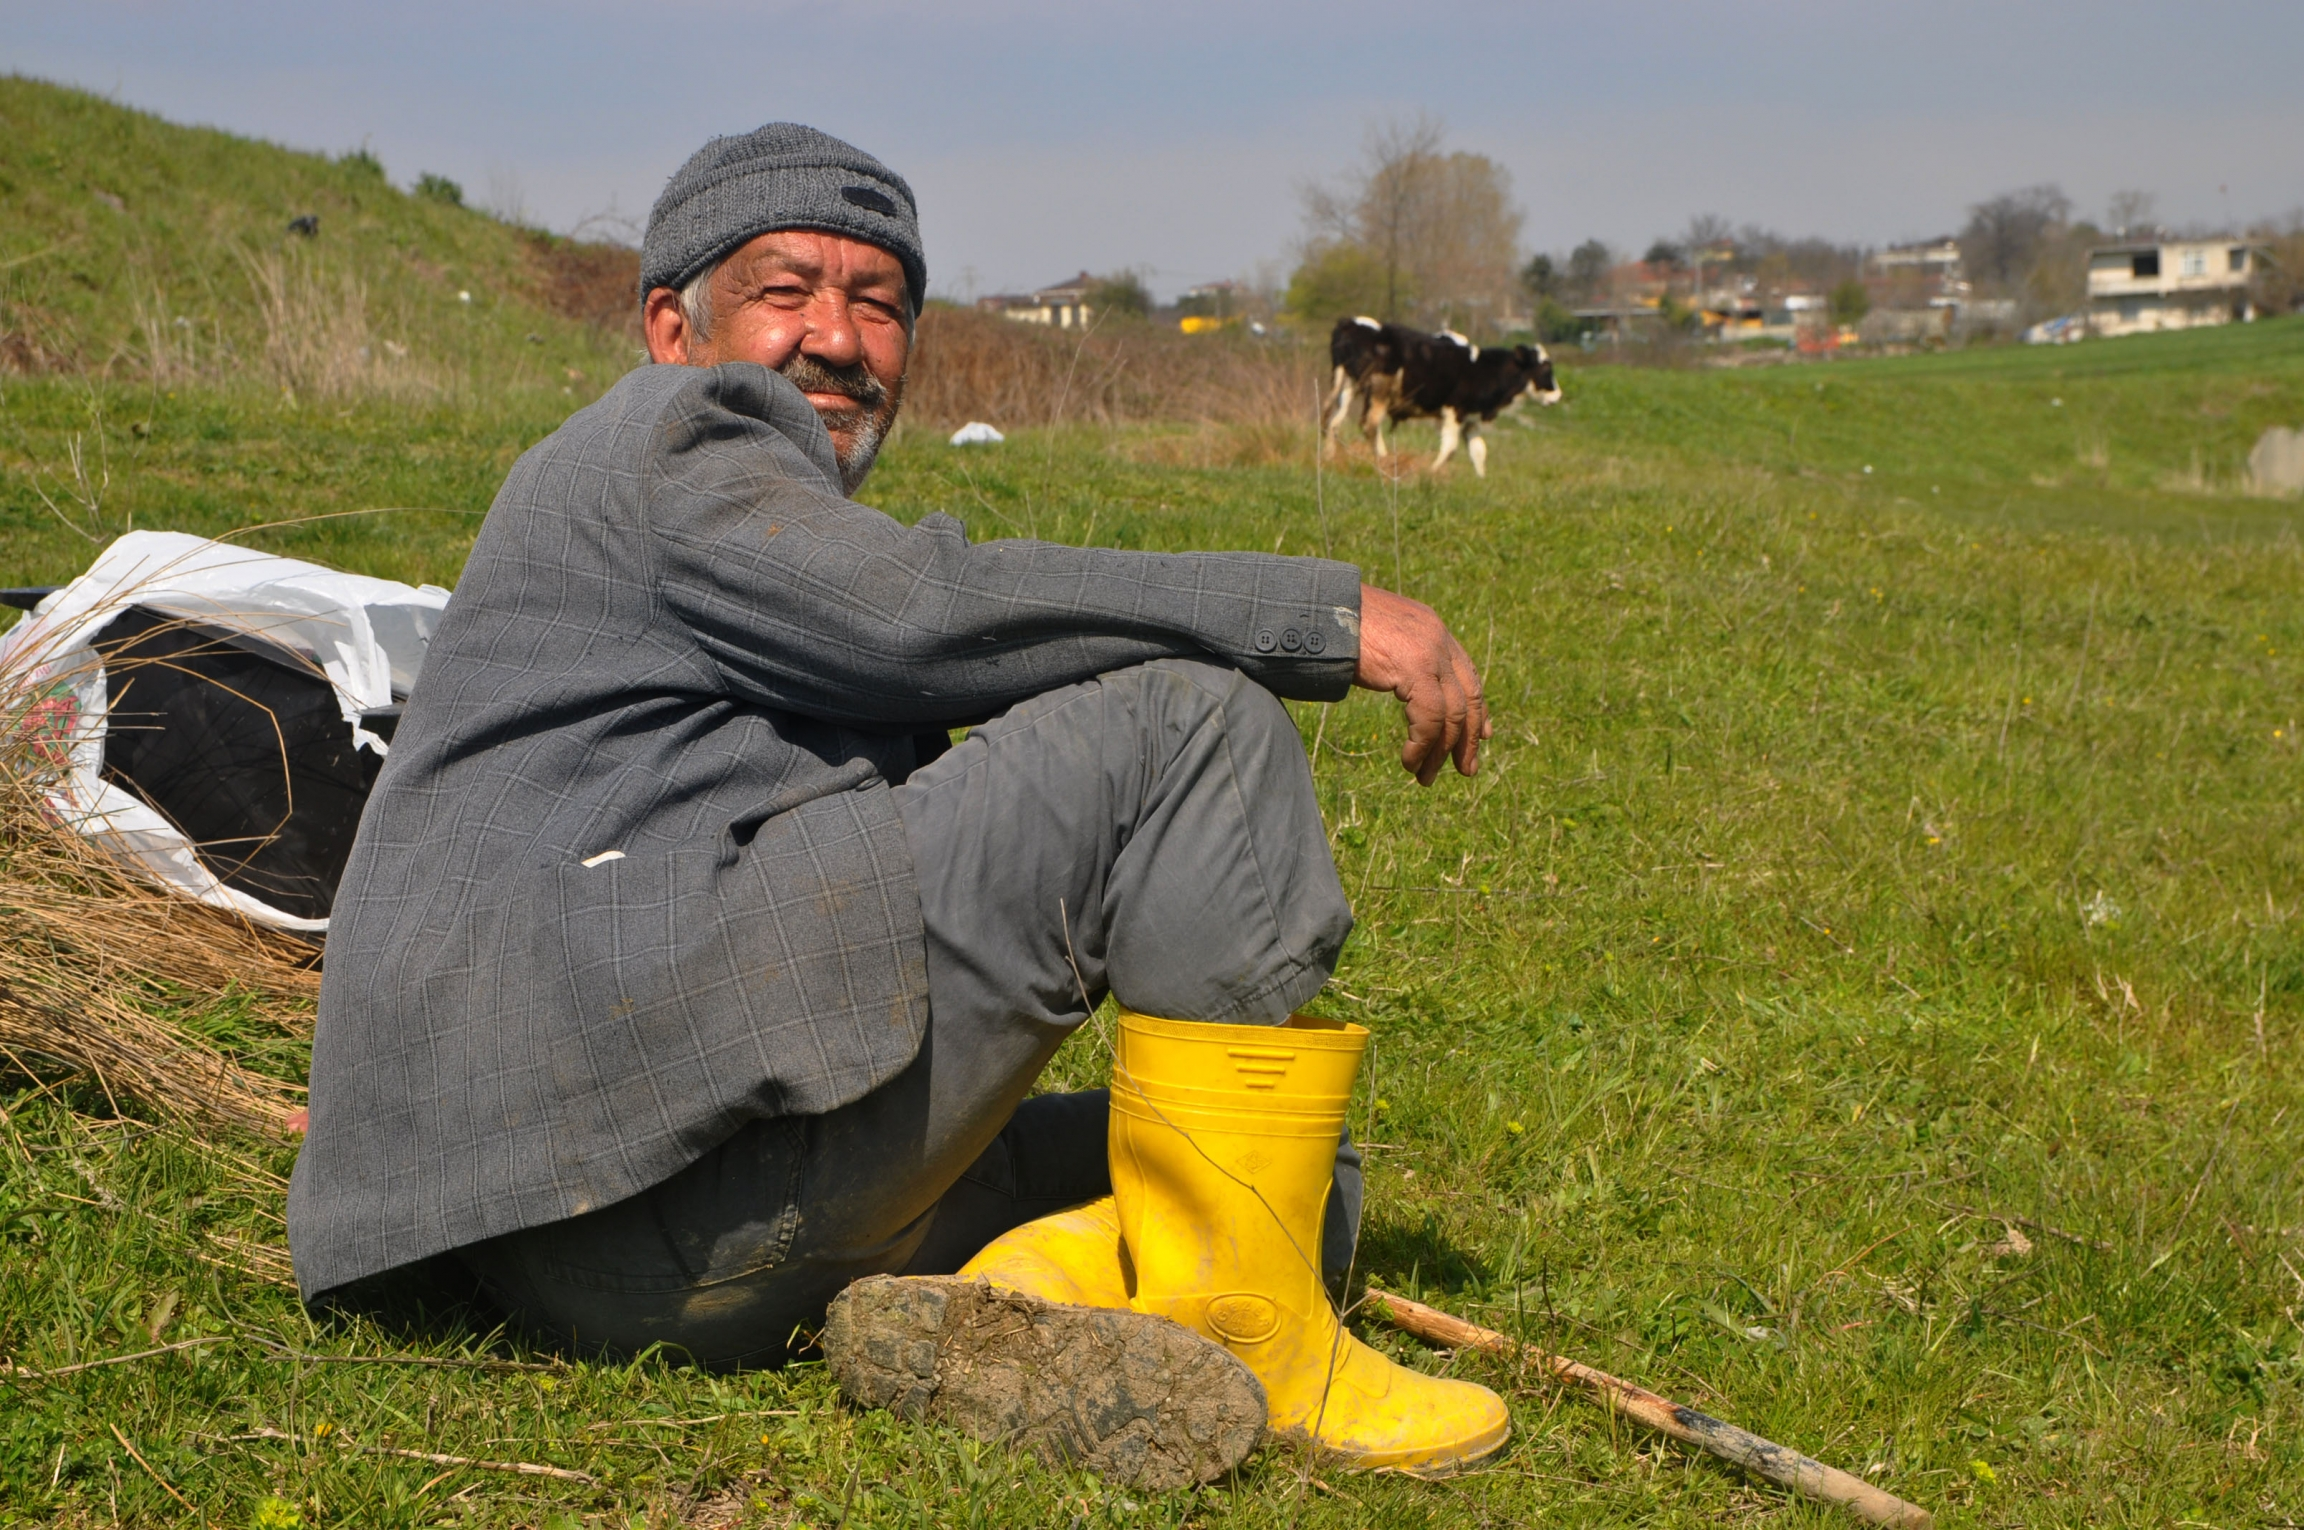 A man wearing a suit and yellow boots sits on the grass near grazing cows.